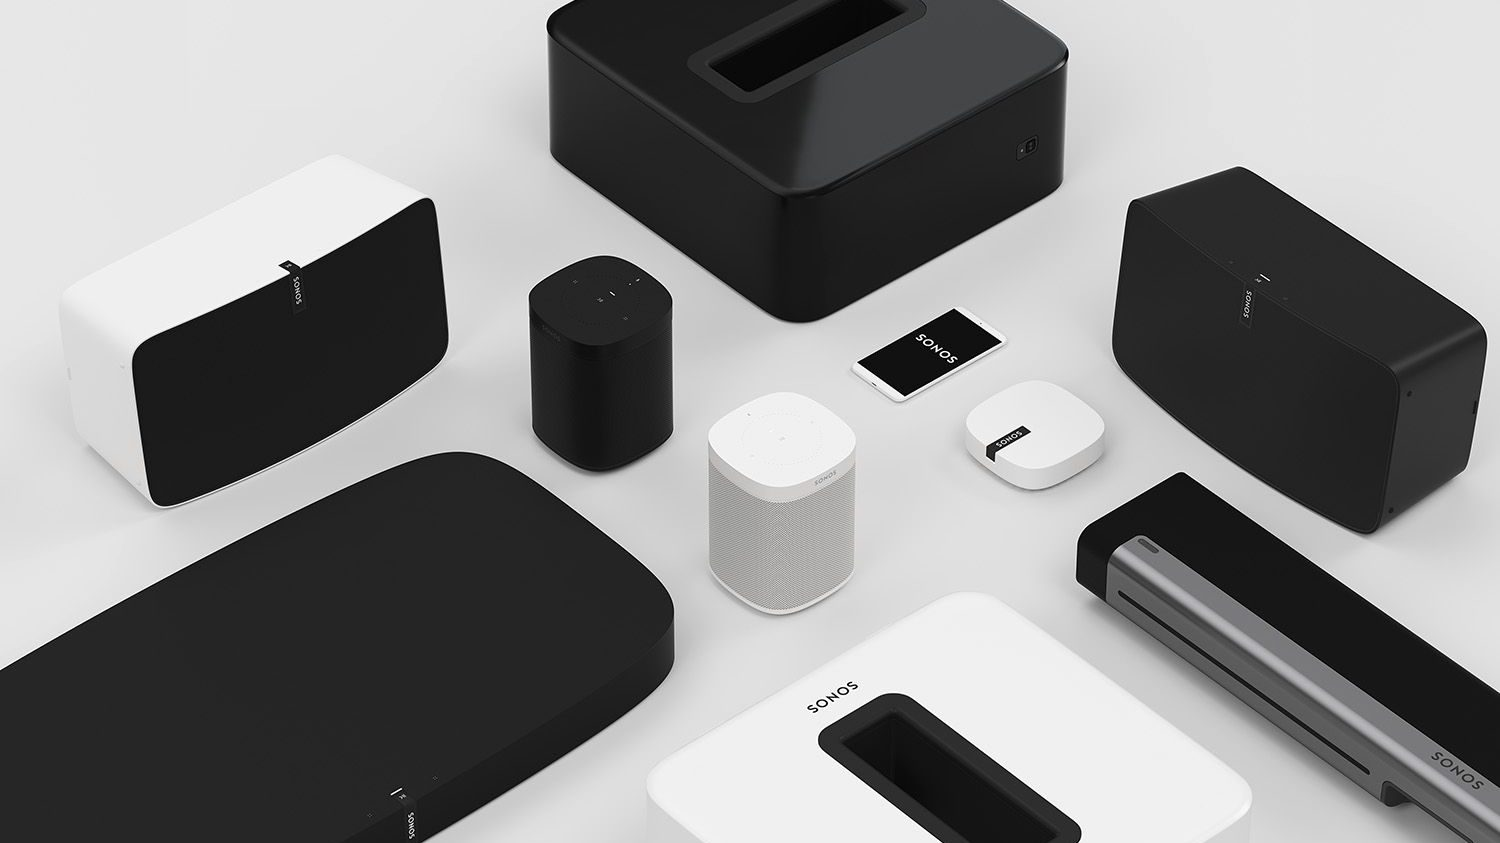 Smart-Speaker Maker Sonos Files for IPO to Challenge Tech Giants